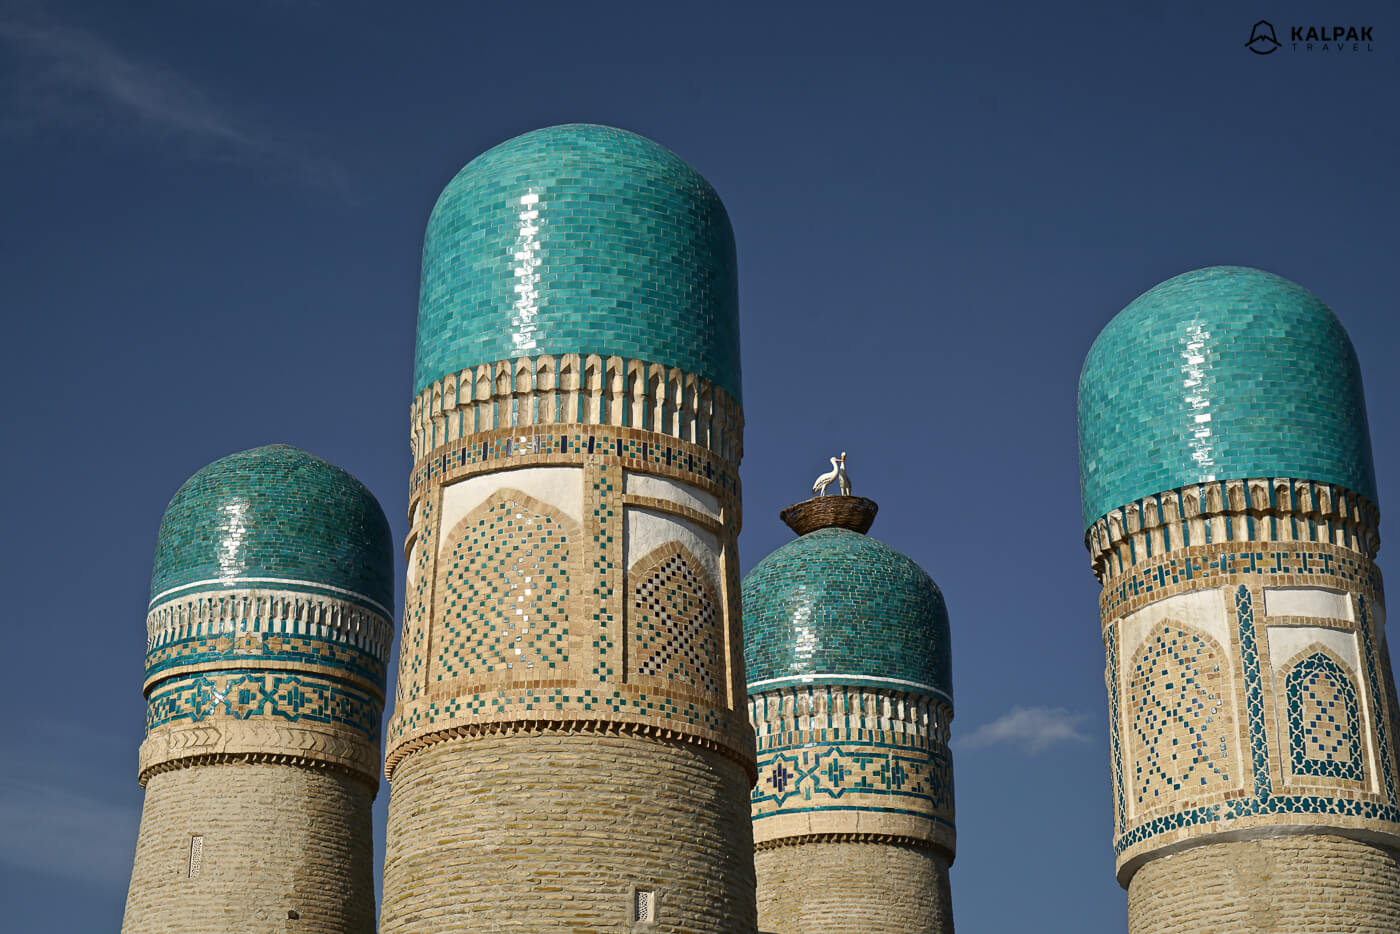 Chor minor or 4 minarets -towers of mosque in Bukhara